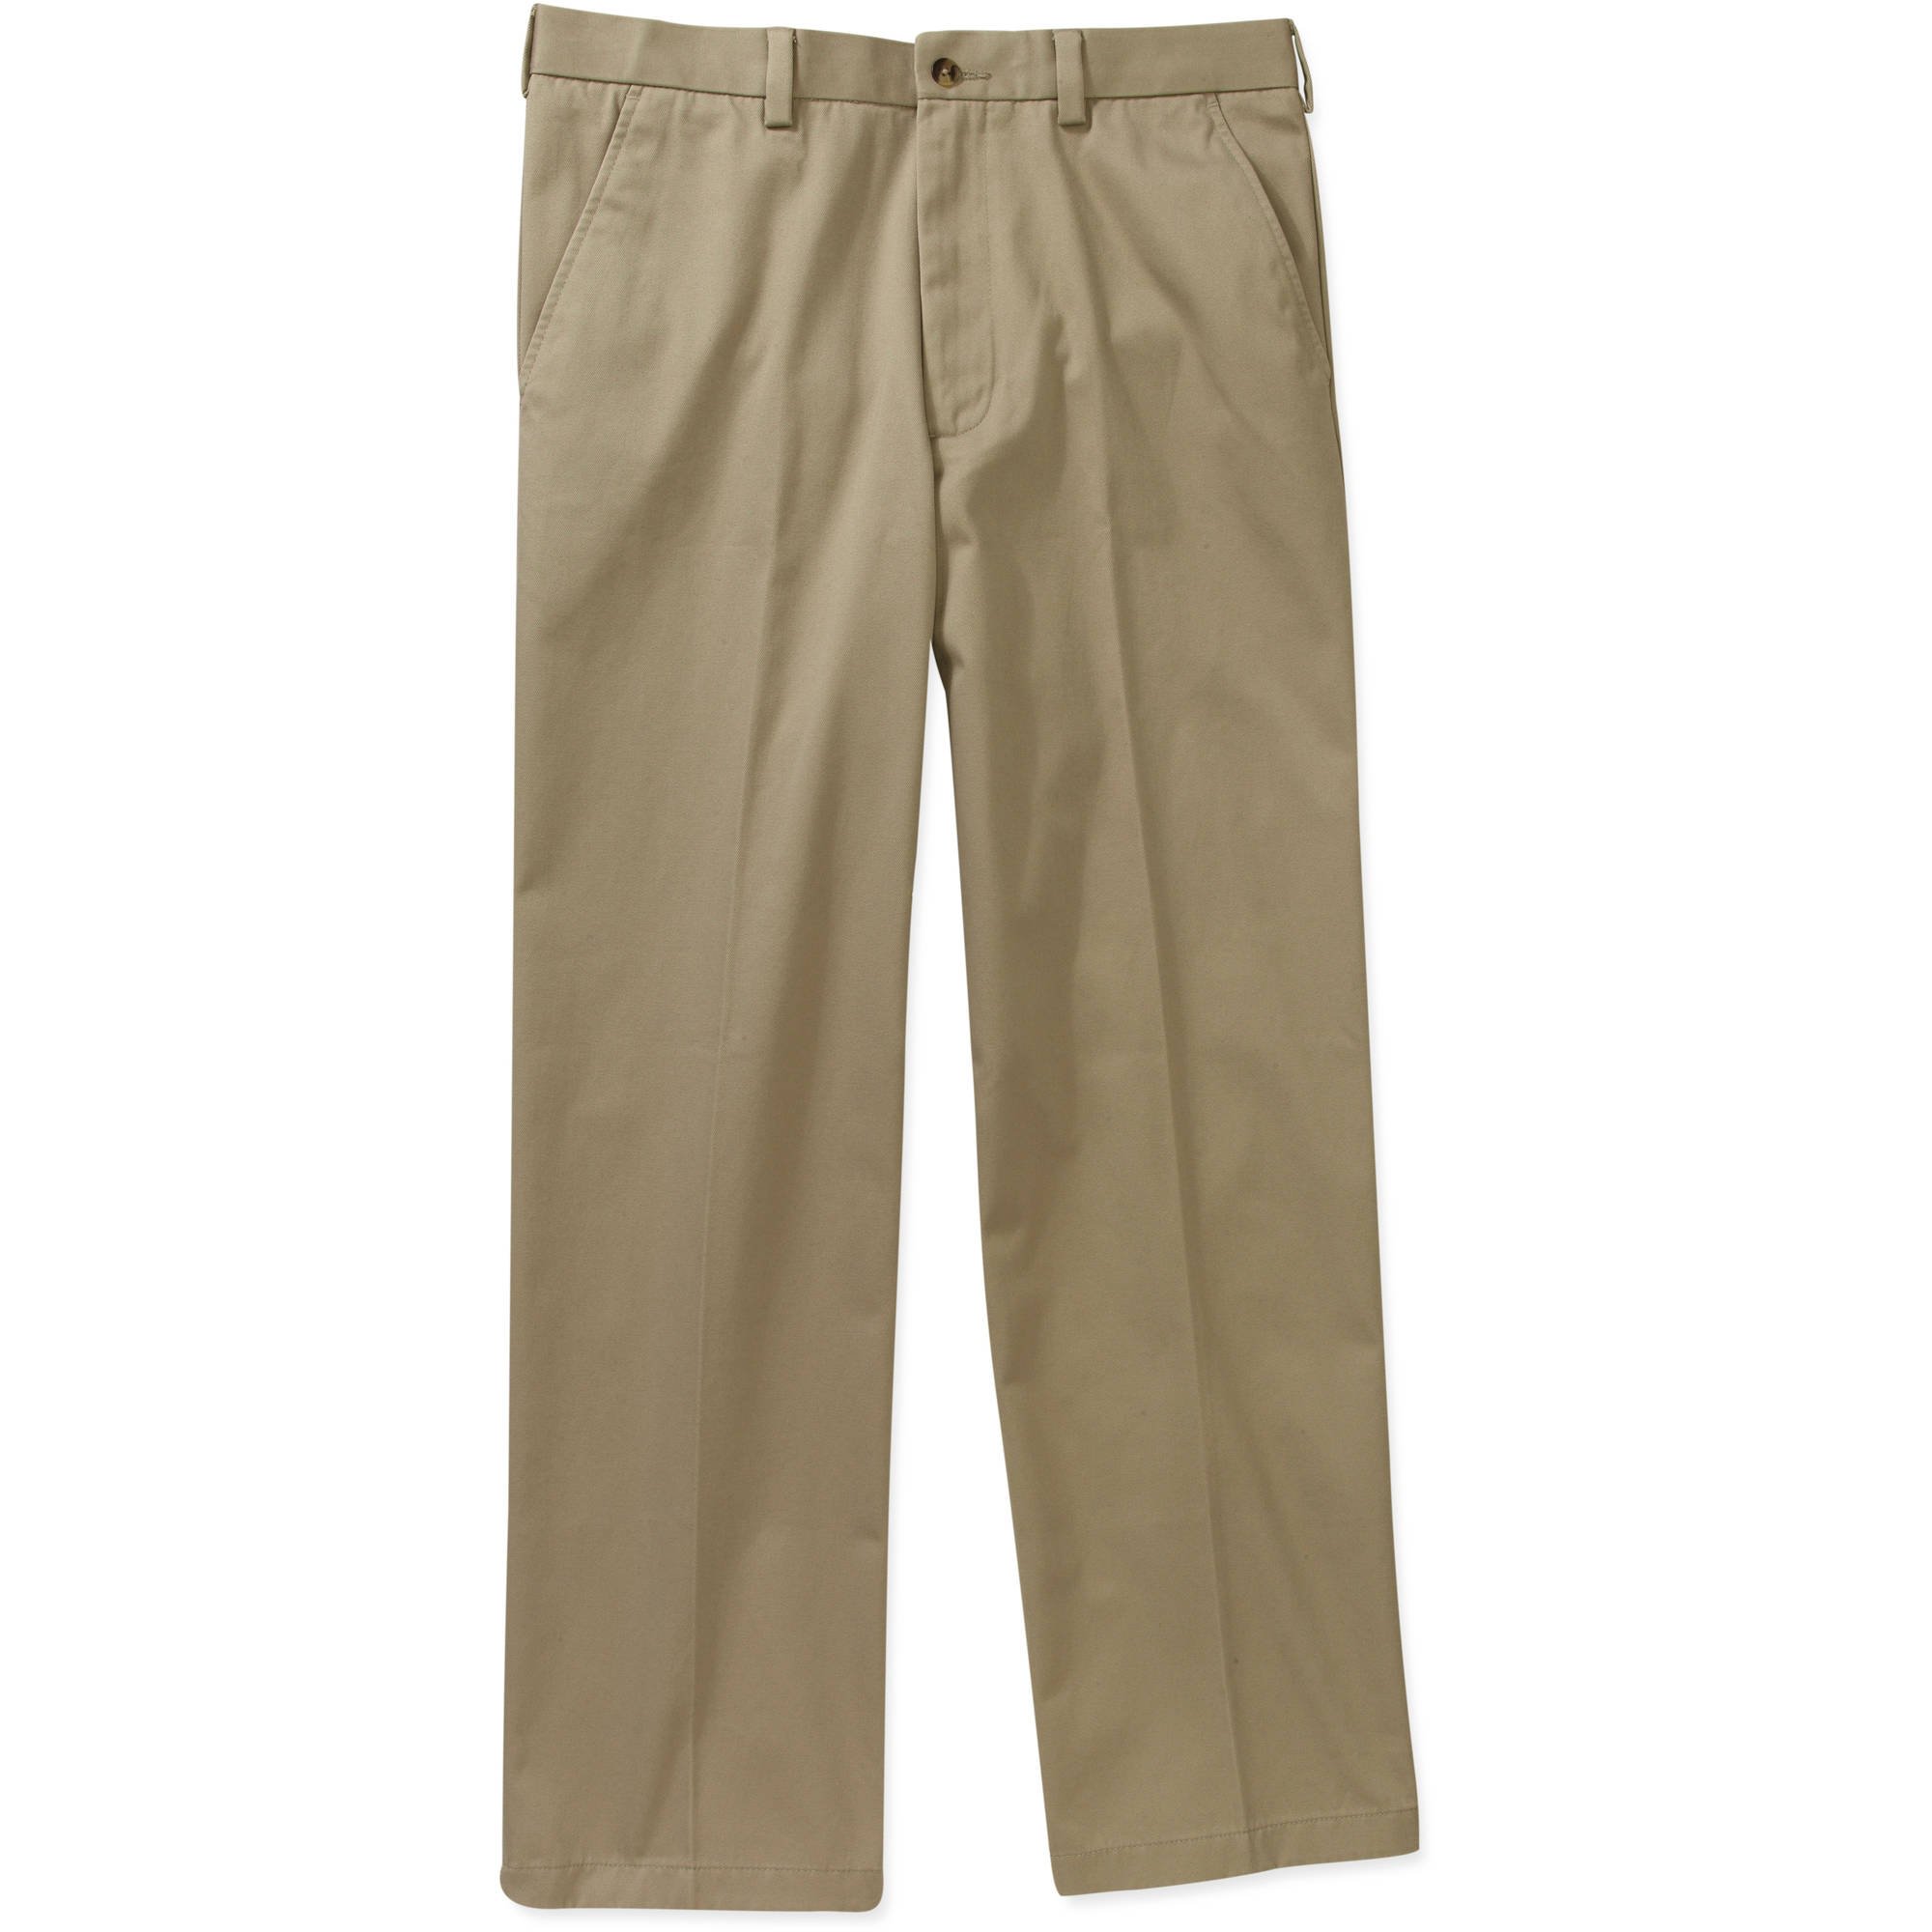 George - Big Men's Premium Flat Front Khaki Pants - Walmart.com